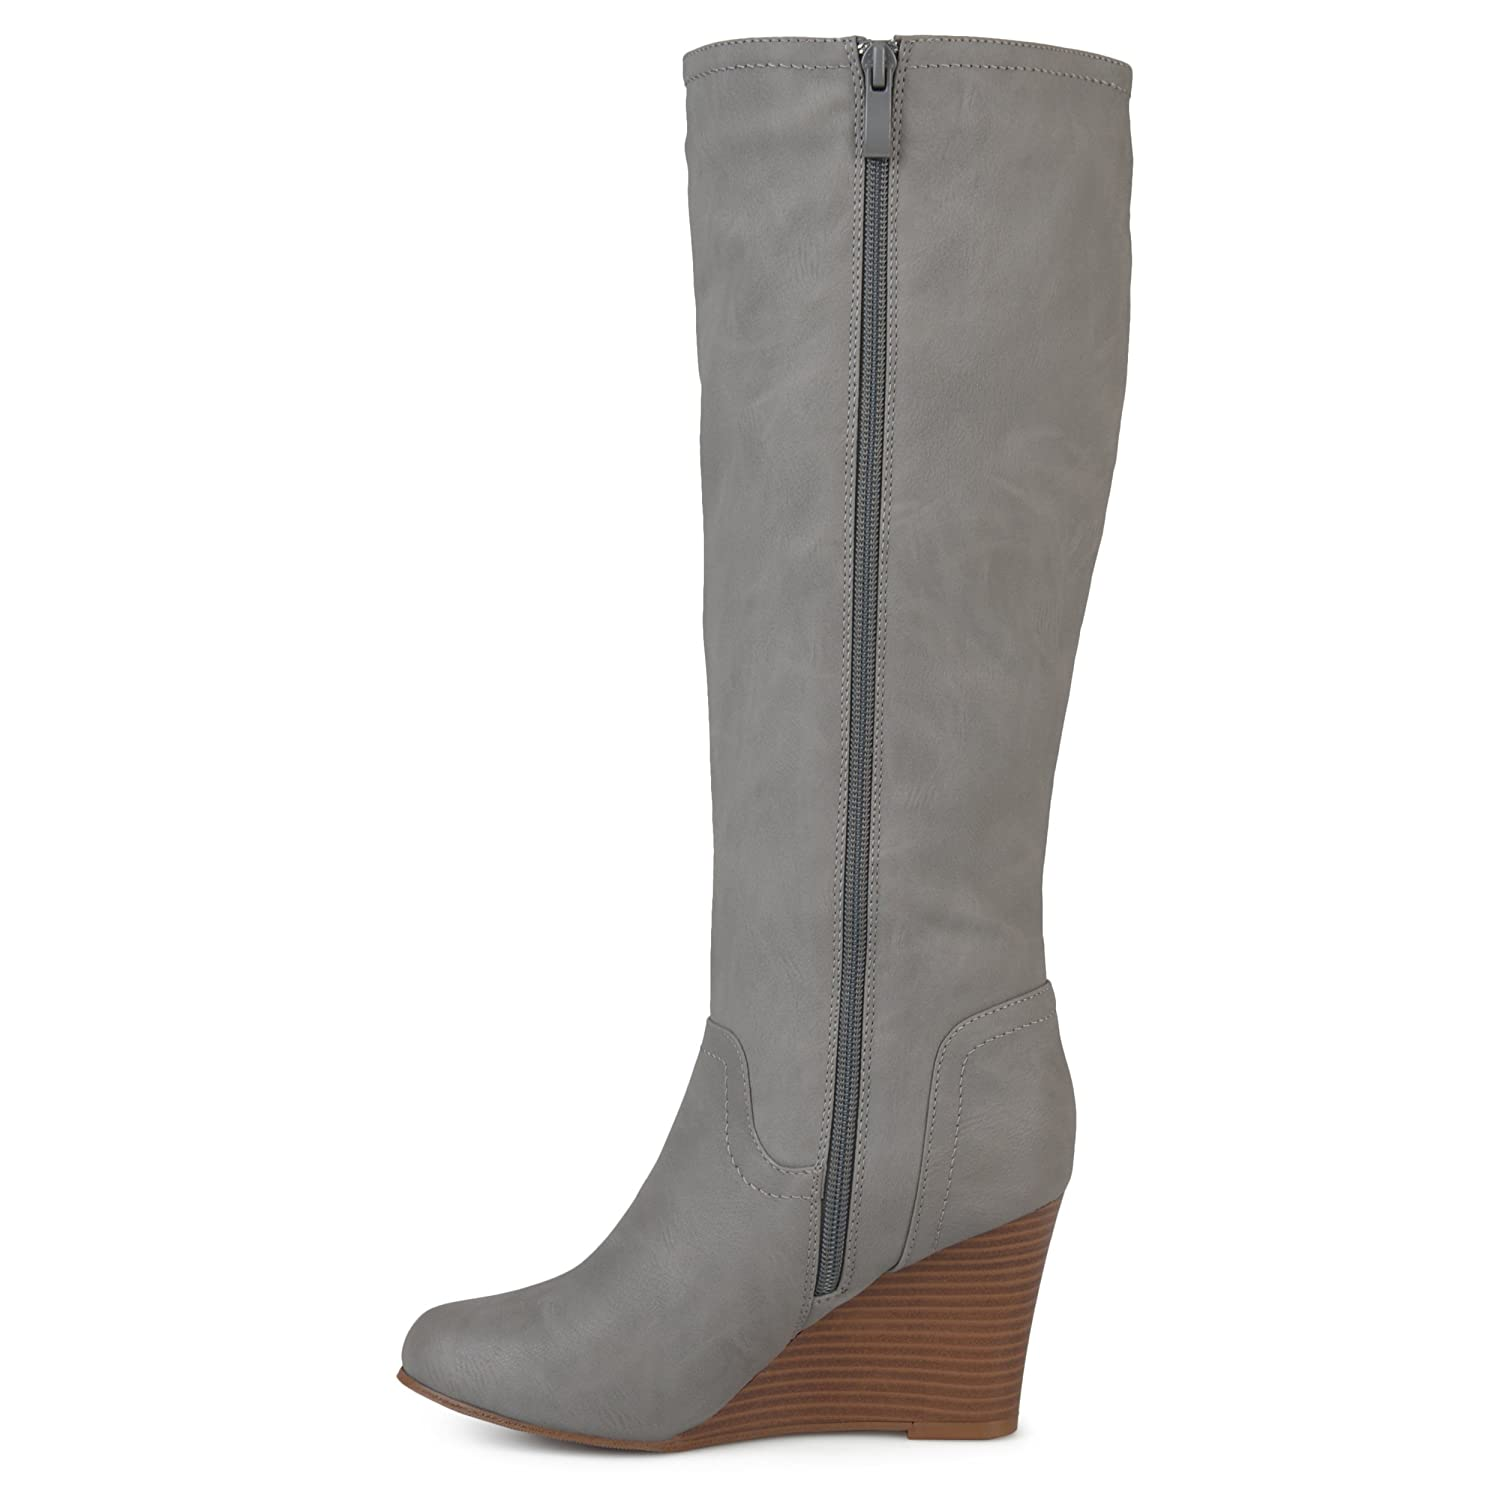 1333016a1ead Brinley Co. Womens Regular and Wide Calf Round Toe Faux Leather Mid-Calf  Wedge Boots Grey